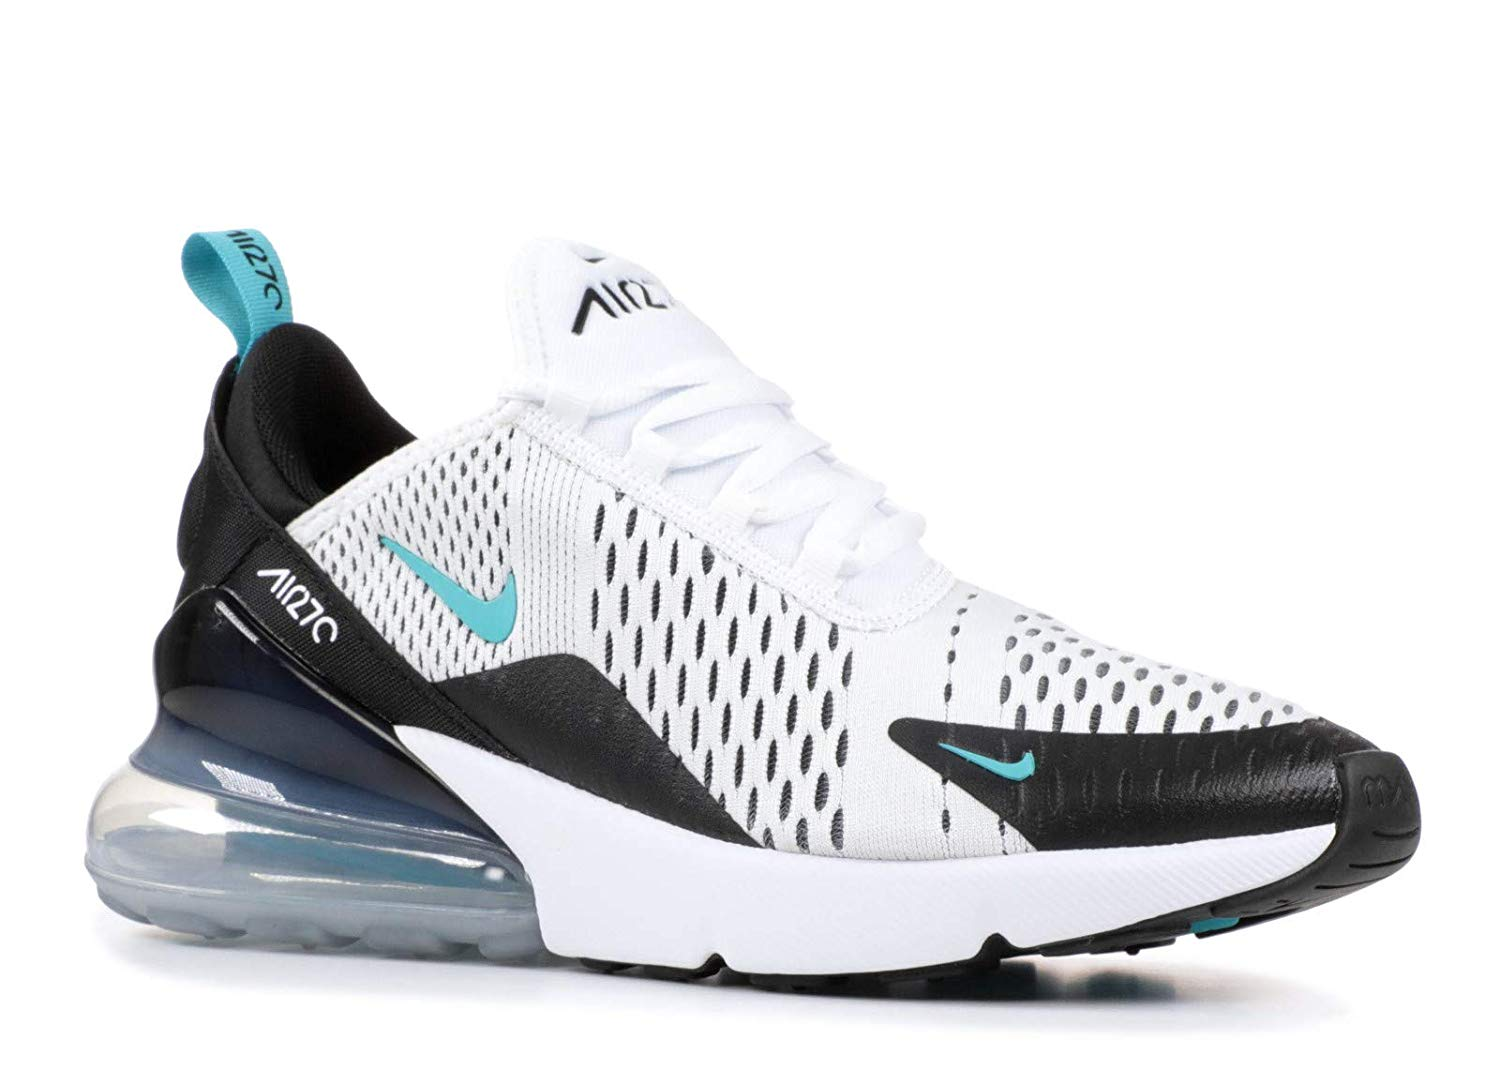 NIKE AIR MAX 270 CLASS A RUNNING SHOES (White Green) FOR MEN AND WOMEN SIZE(36 45)